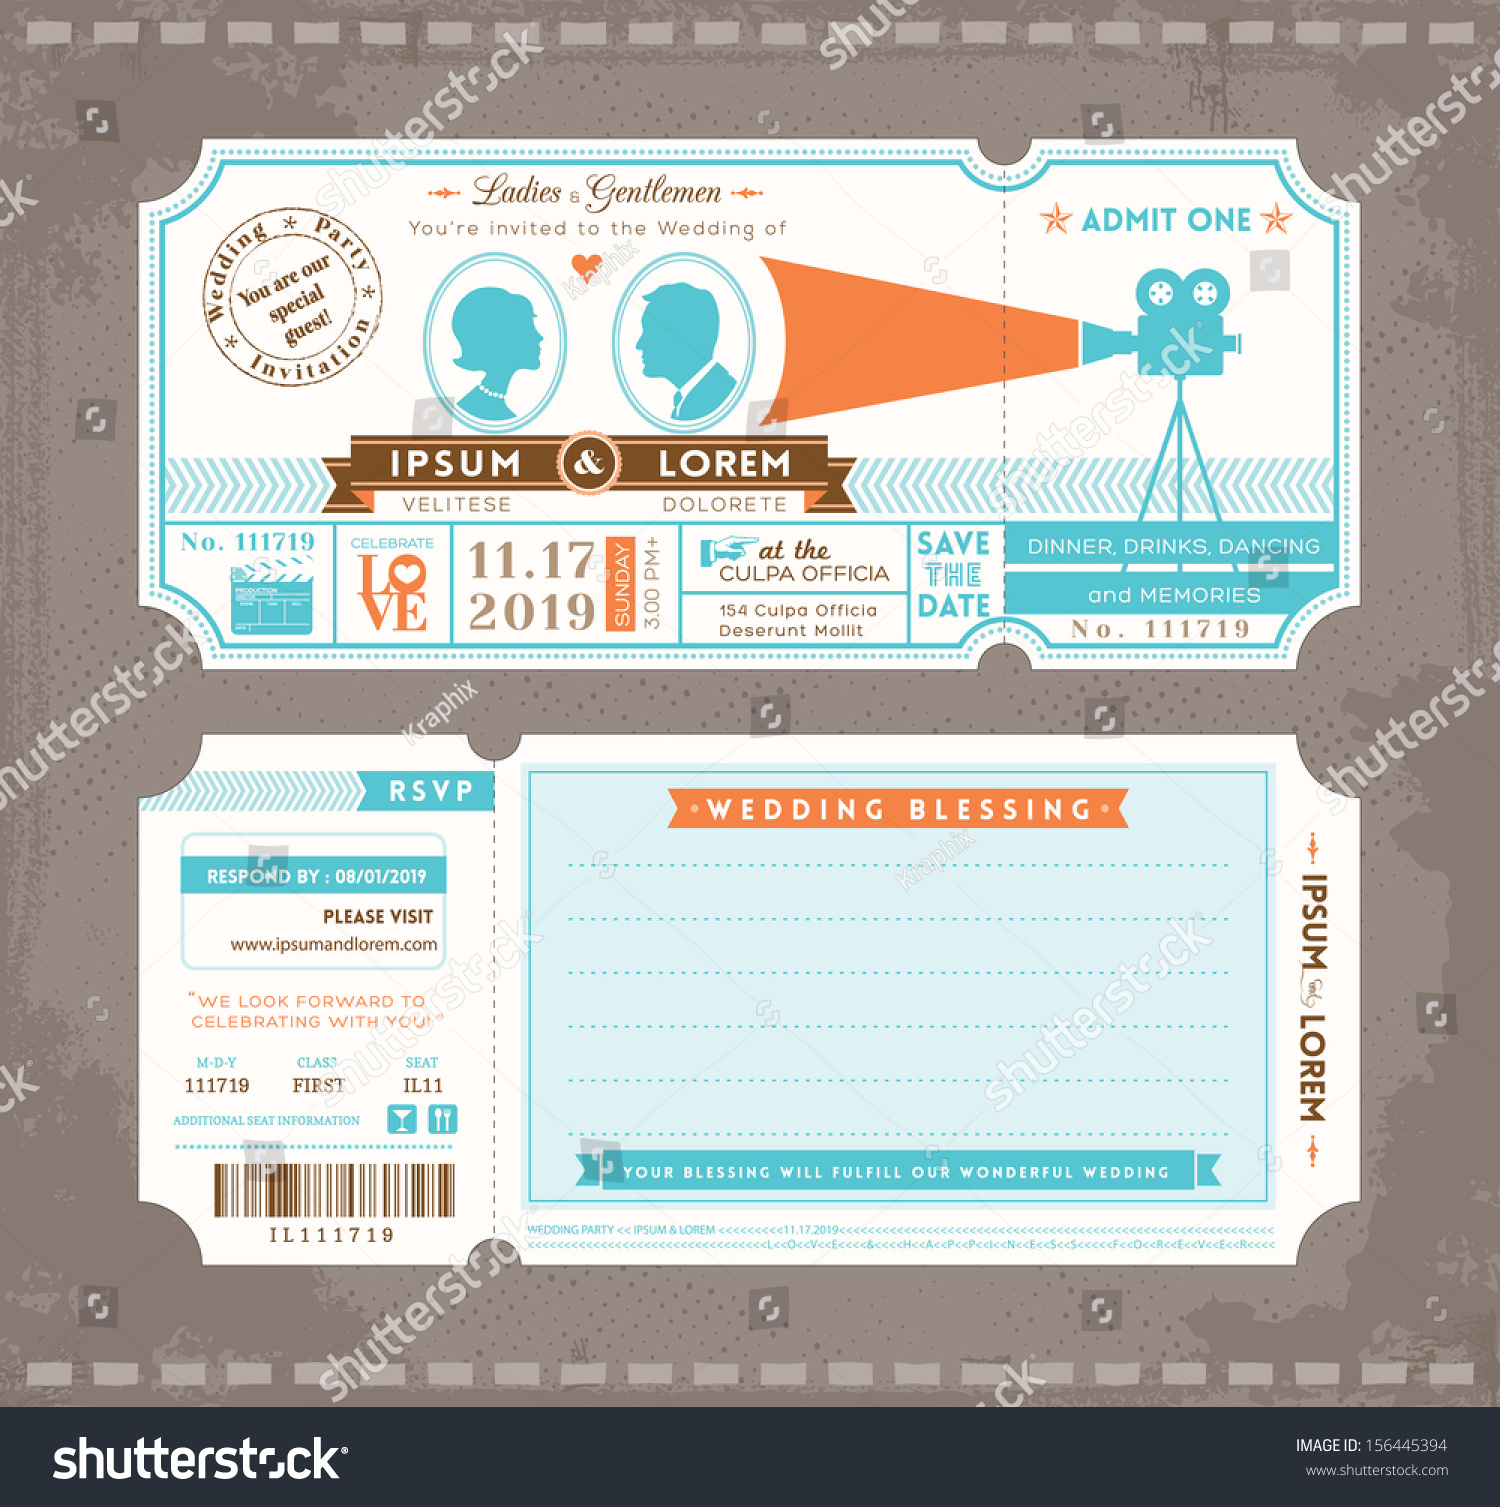 Vector Movie Ticket Wedding Invitation Design Vector – Invitation Ticket